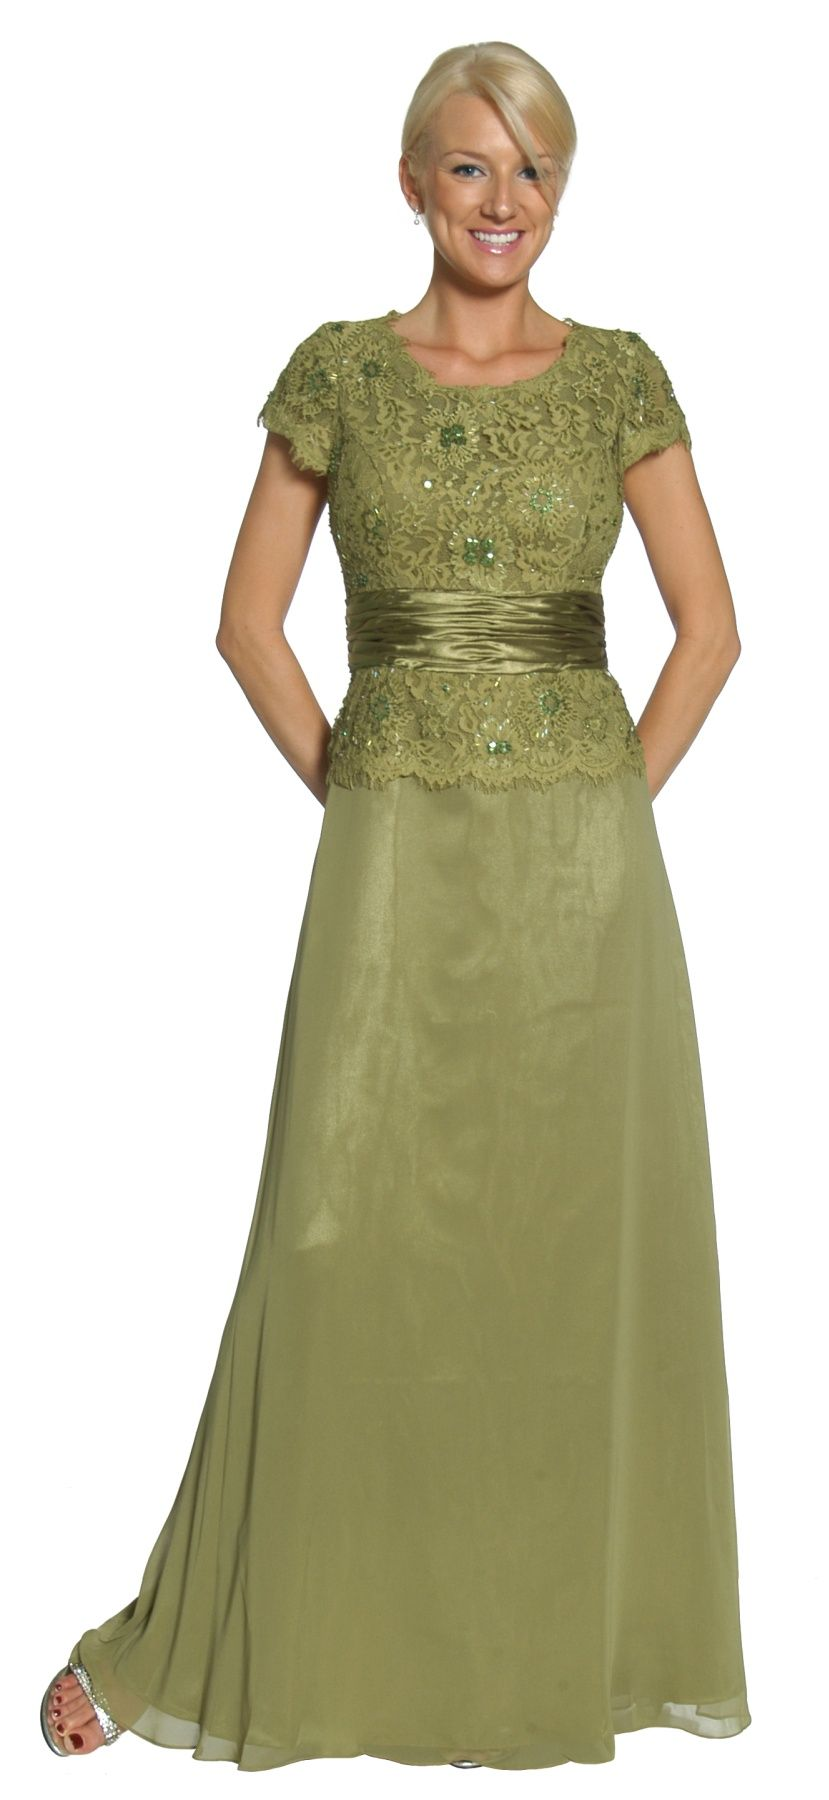 1a3209be8e Olive Green Mother of Bride Groom Dress Evening Chiffon Cap Sleeve ...